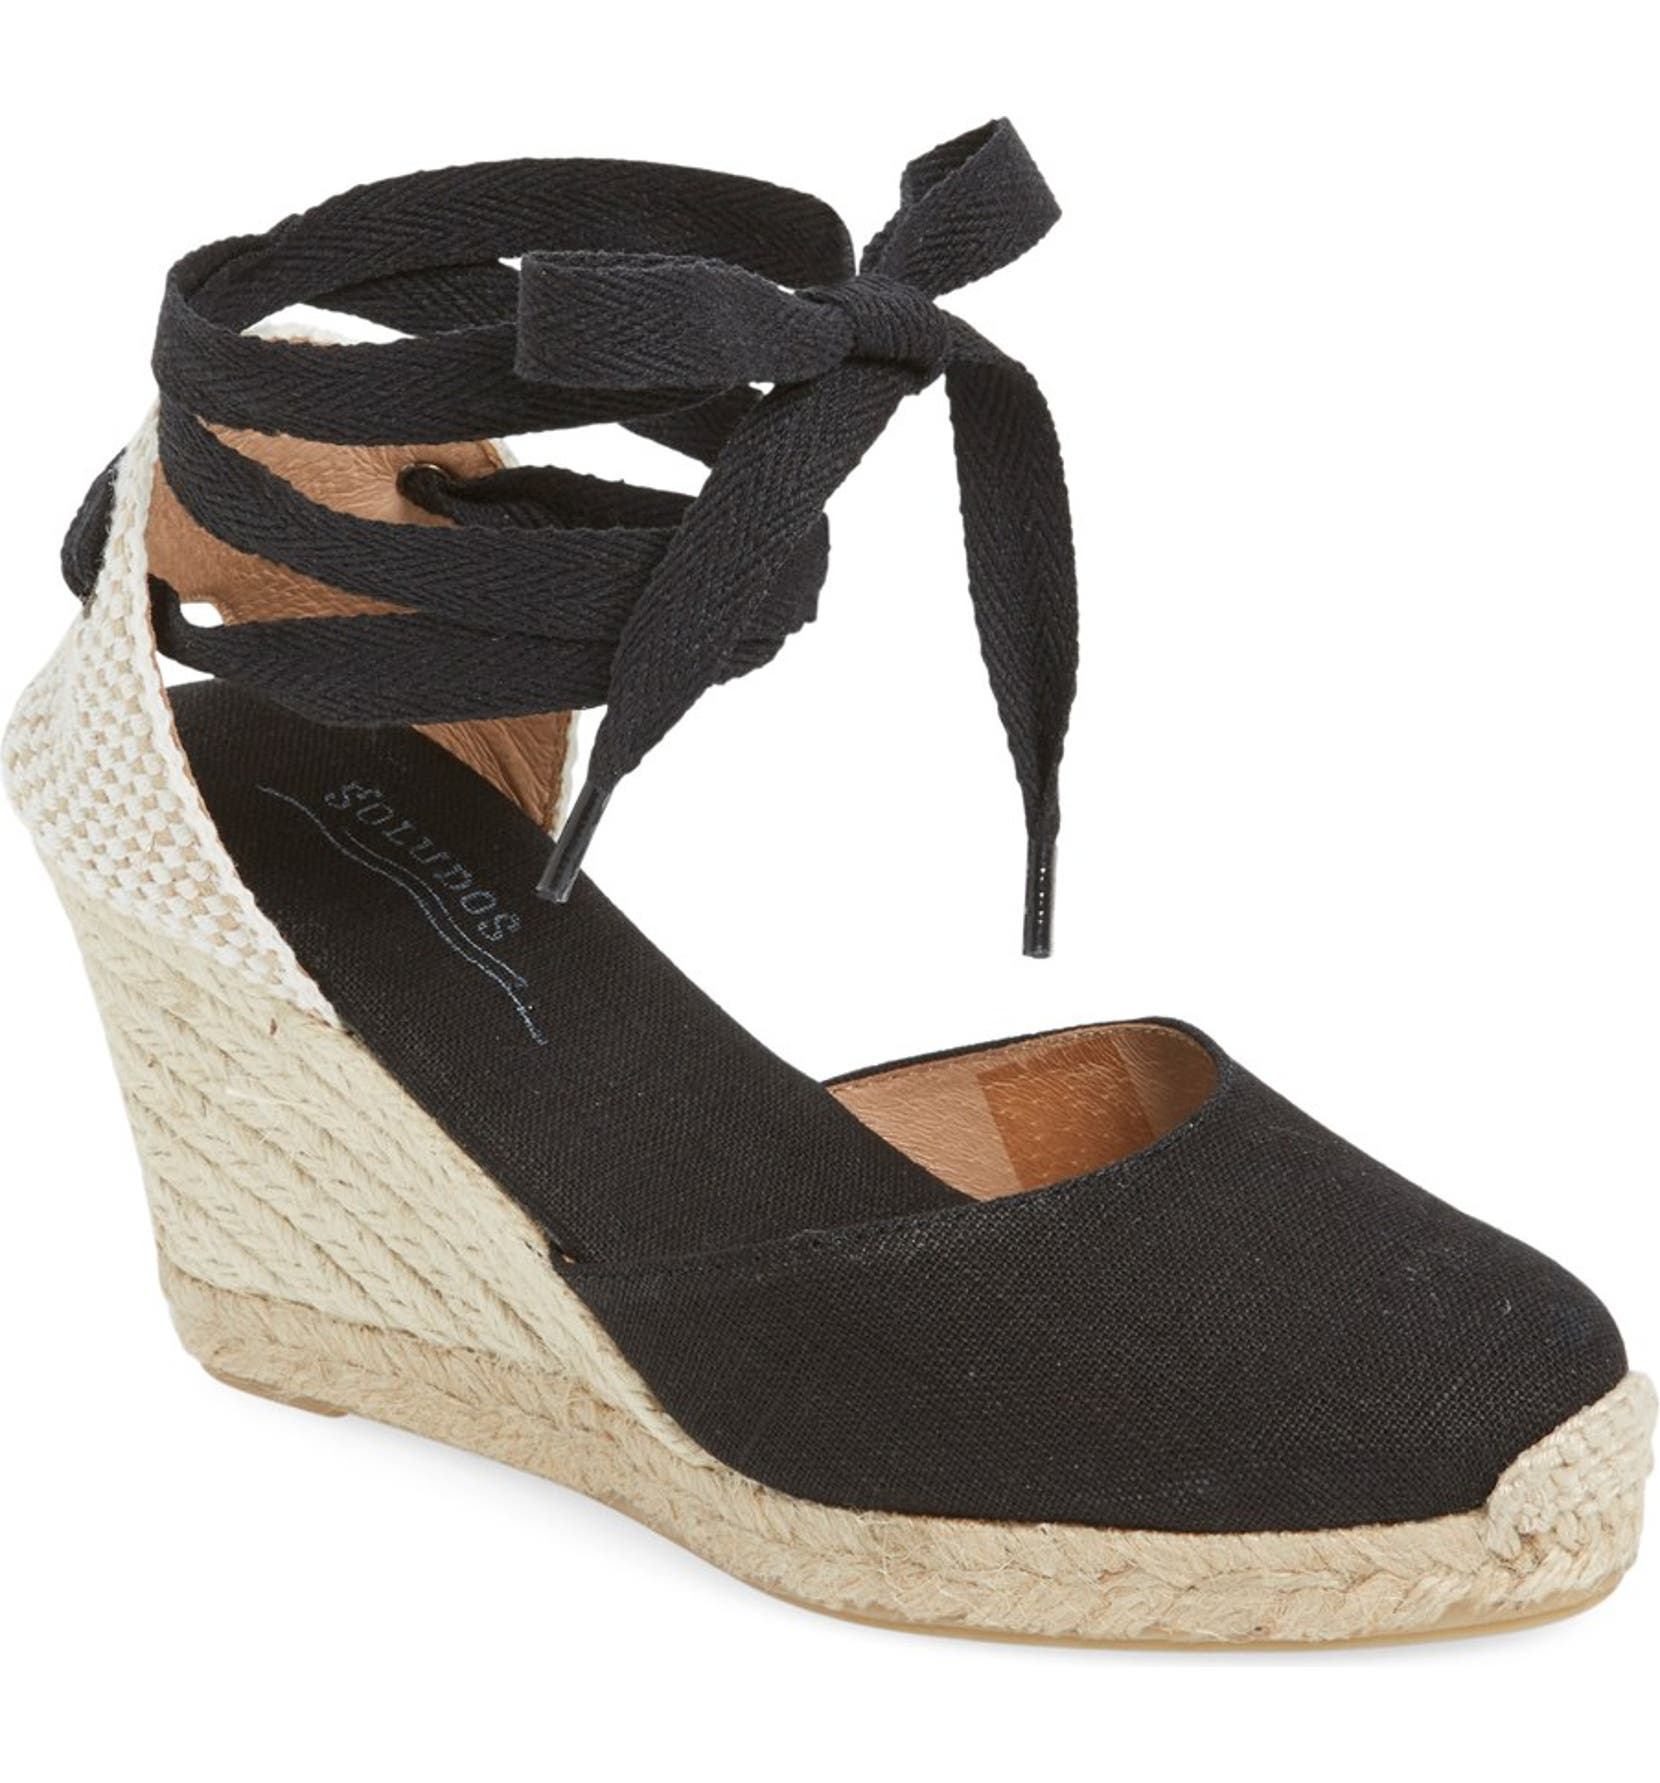 98c490b70e09 Soludos Lace Ankle Tie Espadrille Wedge Sandals - Image Of Tie